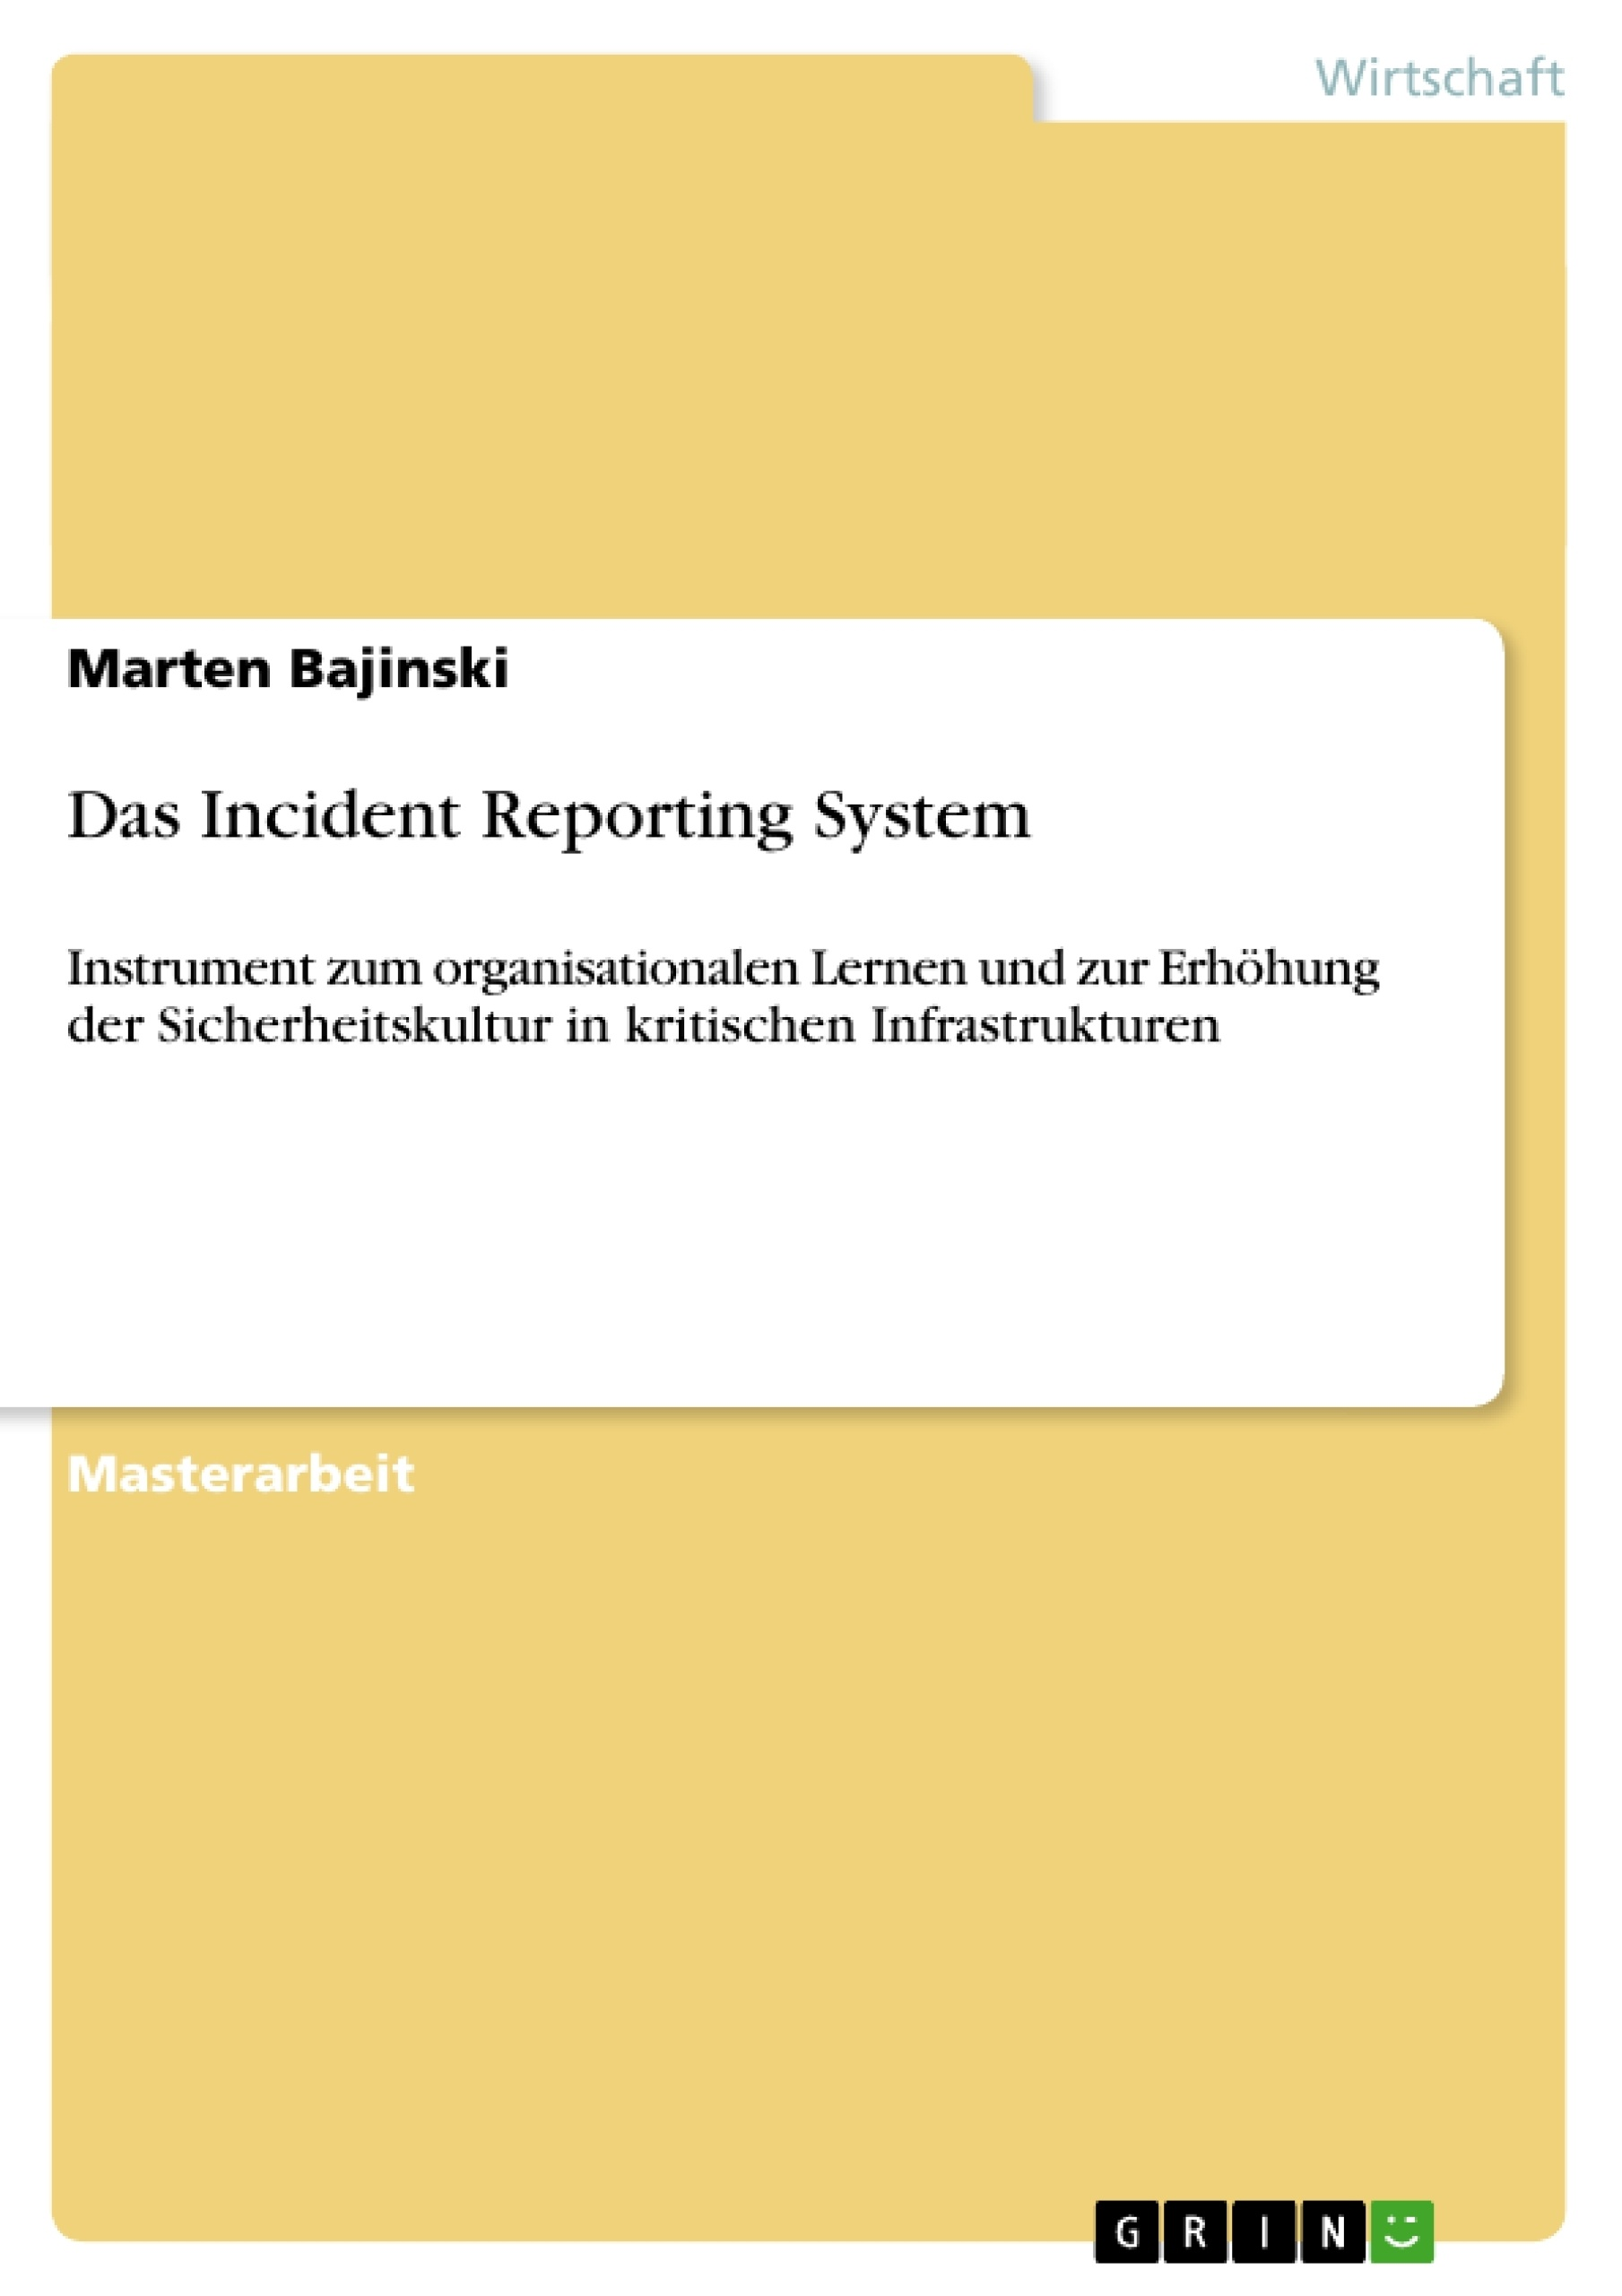 Titel: Das Incident Reporting System